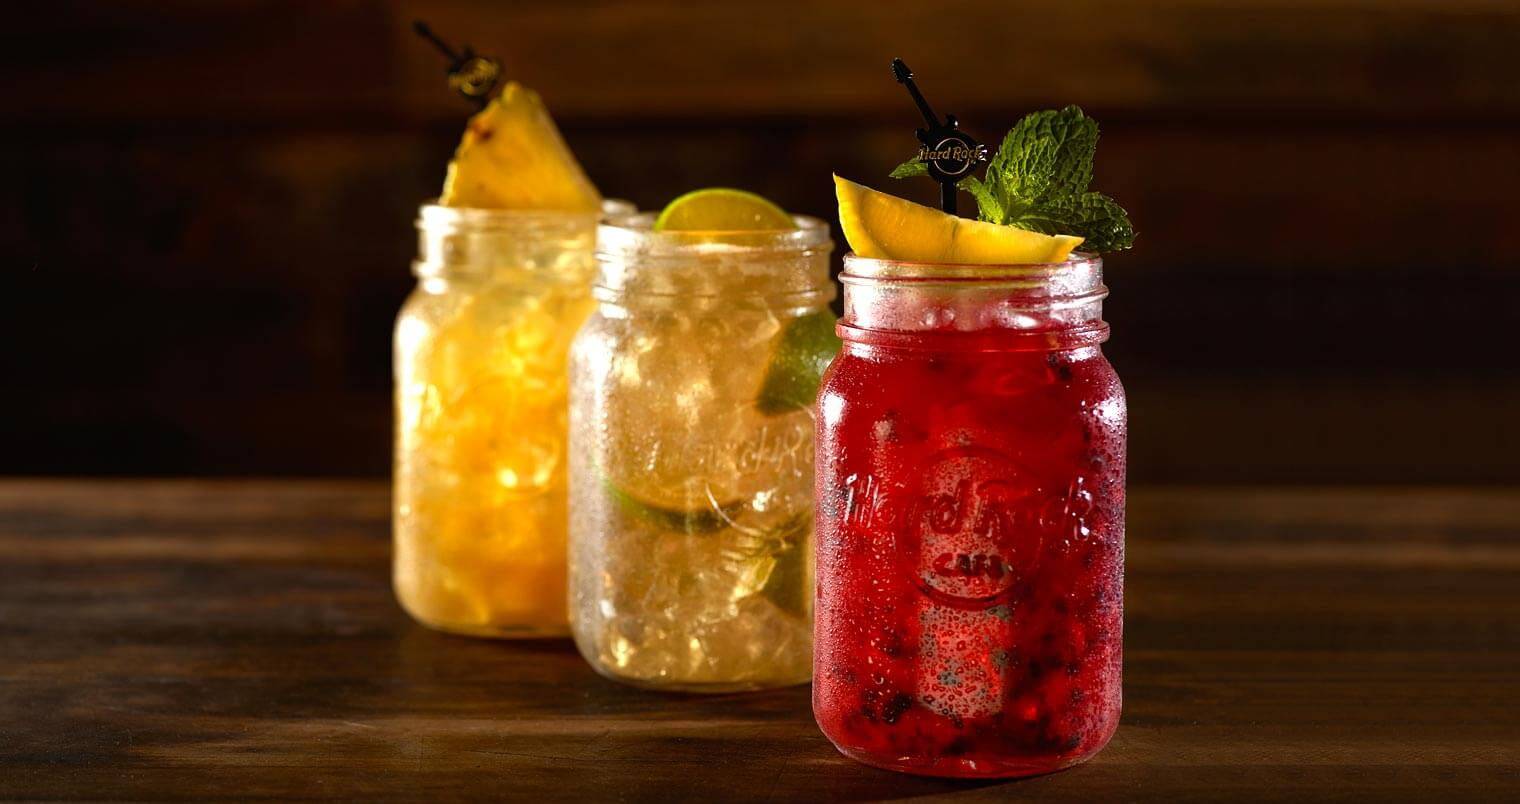 Hard Rock Cafe Seasonal Mason Jar Cocktails, featured image